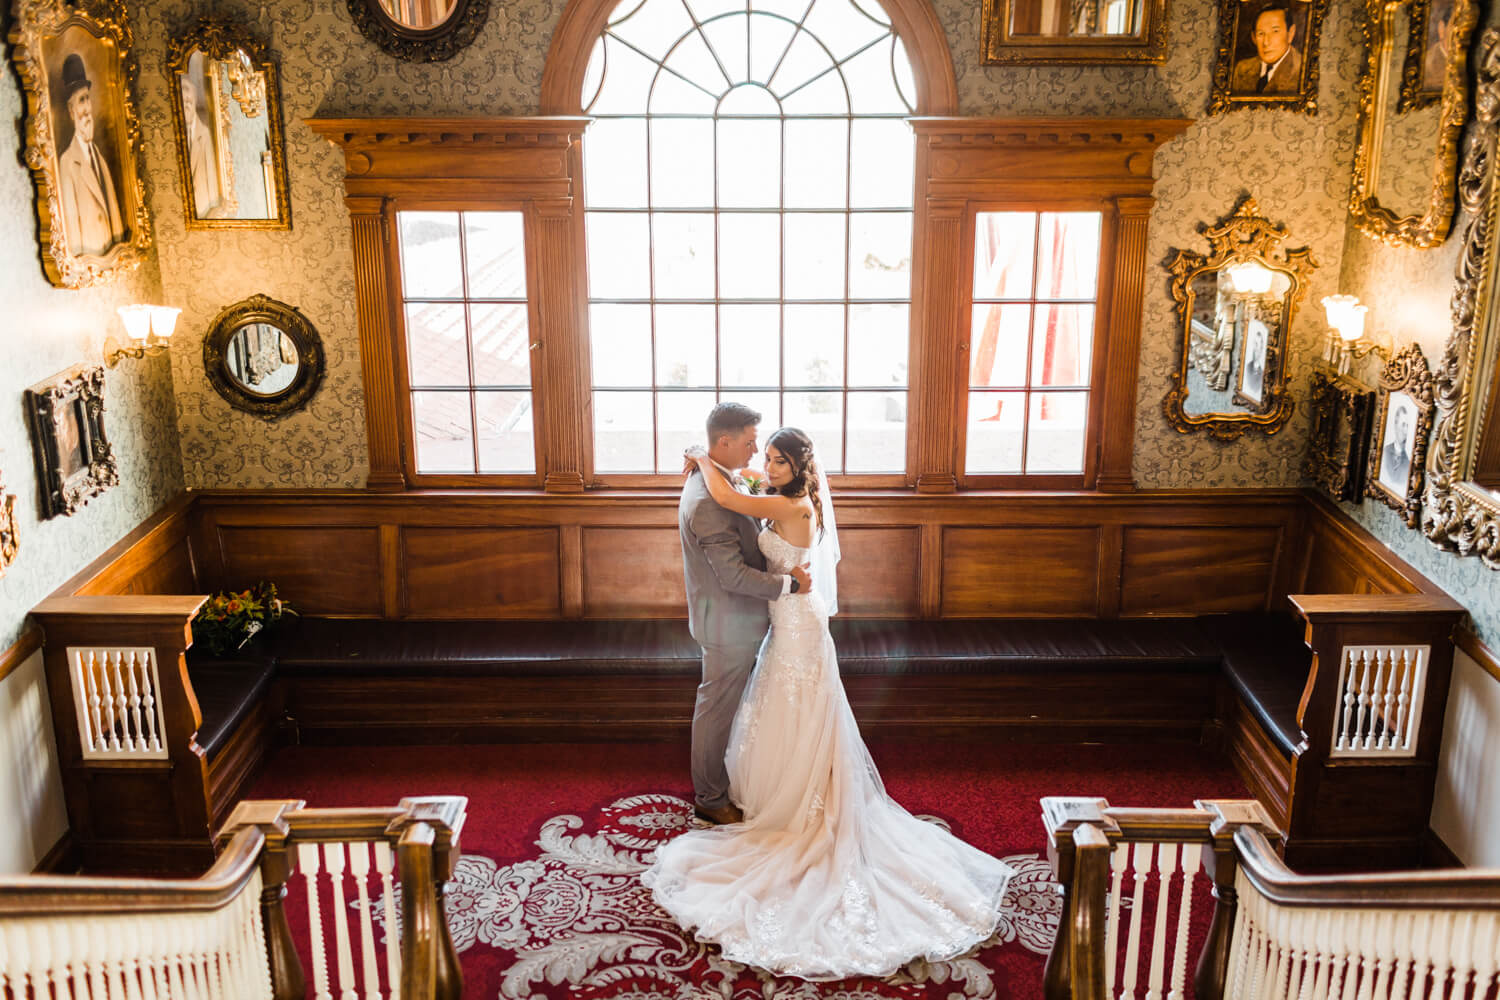 bride and groom in front of an ornate wall